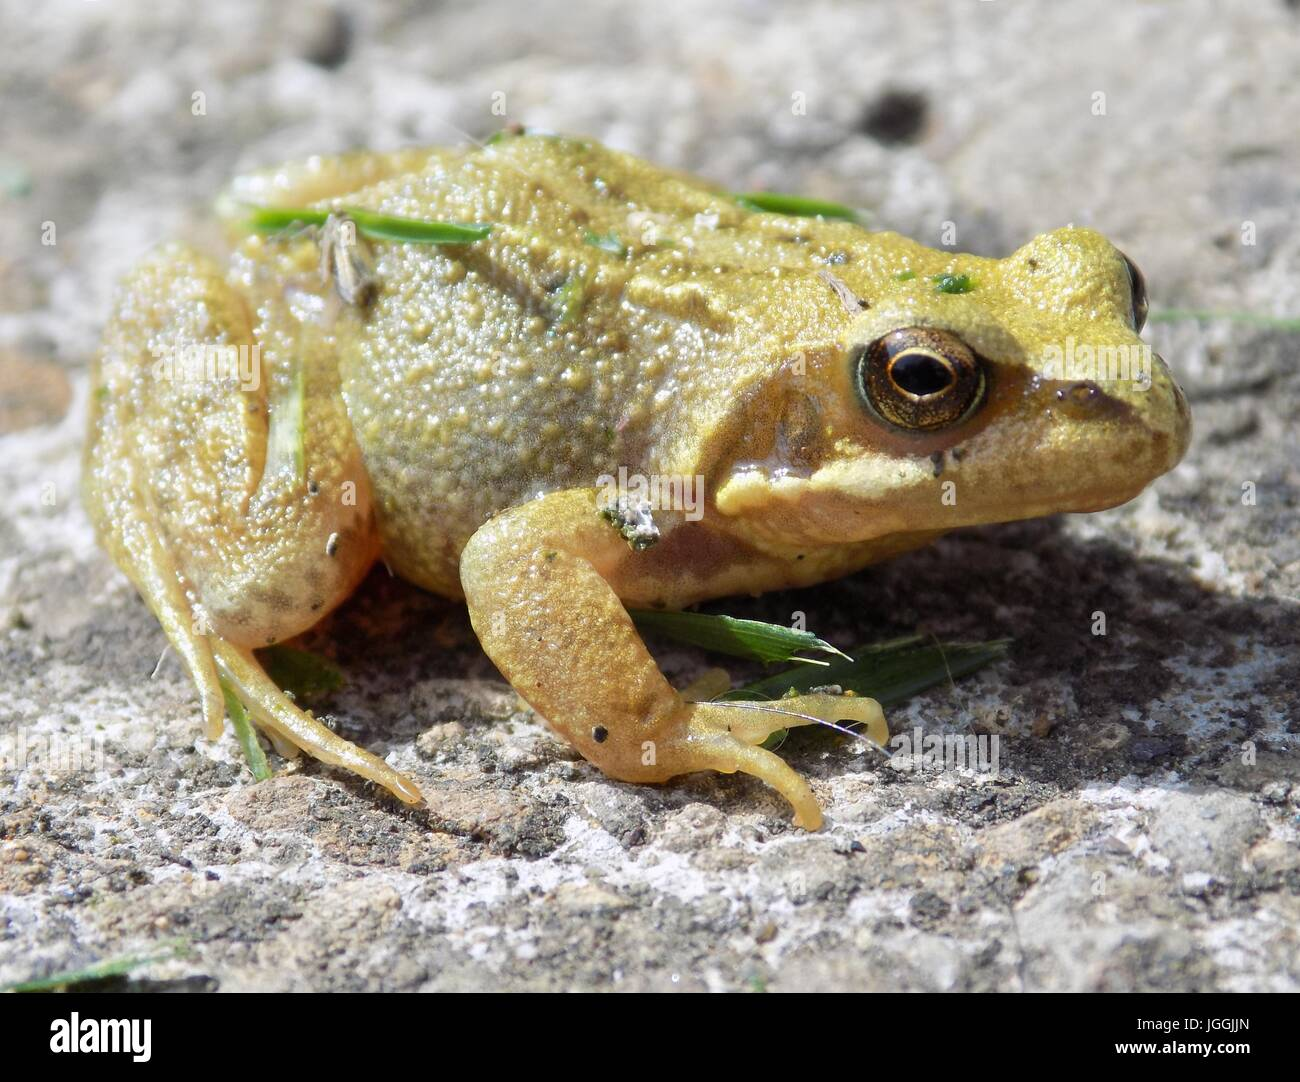 Small yellow and brown frog sitting on a stone in the sun. - Stock Image